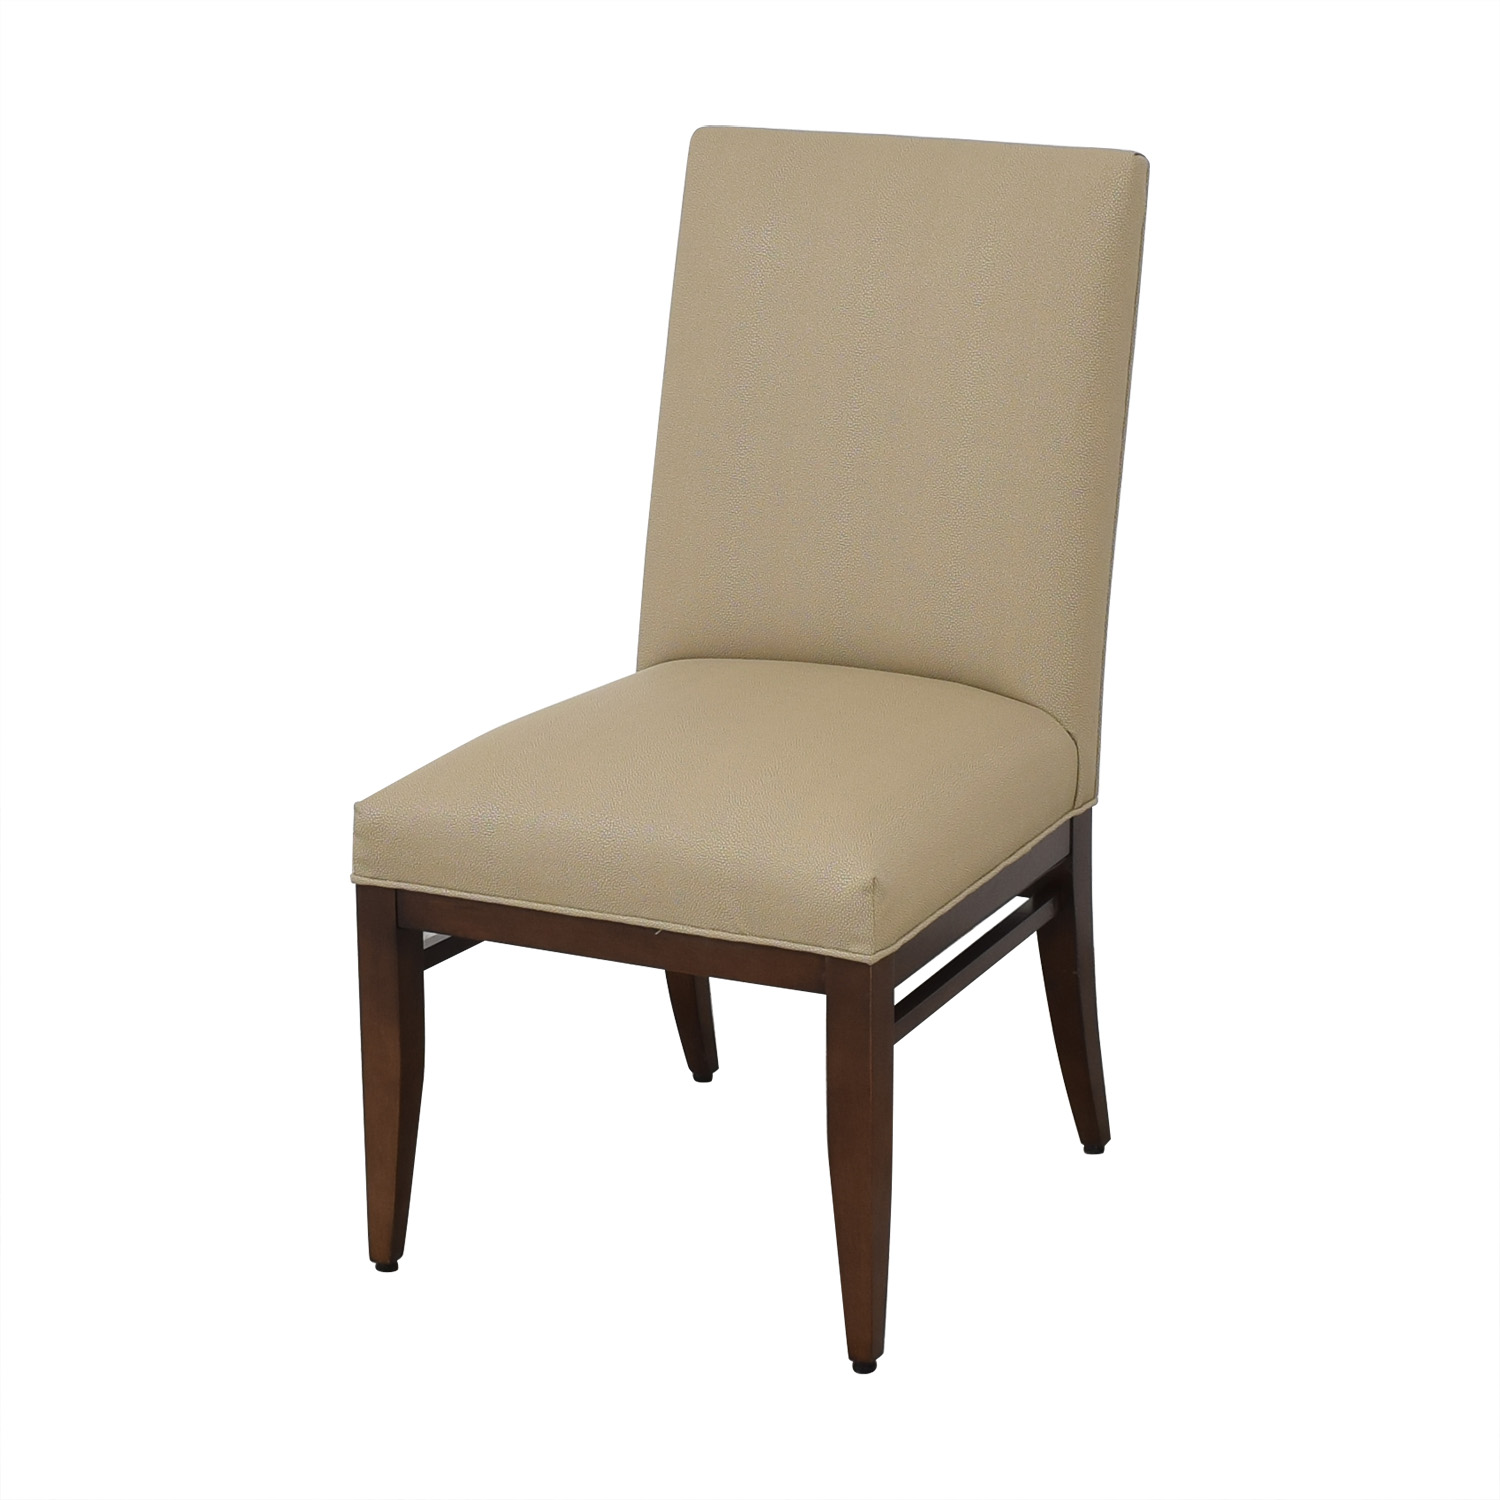 buy Duralee Kent Upholstered Dining Chairs Duralee Dining Chairs